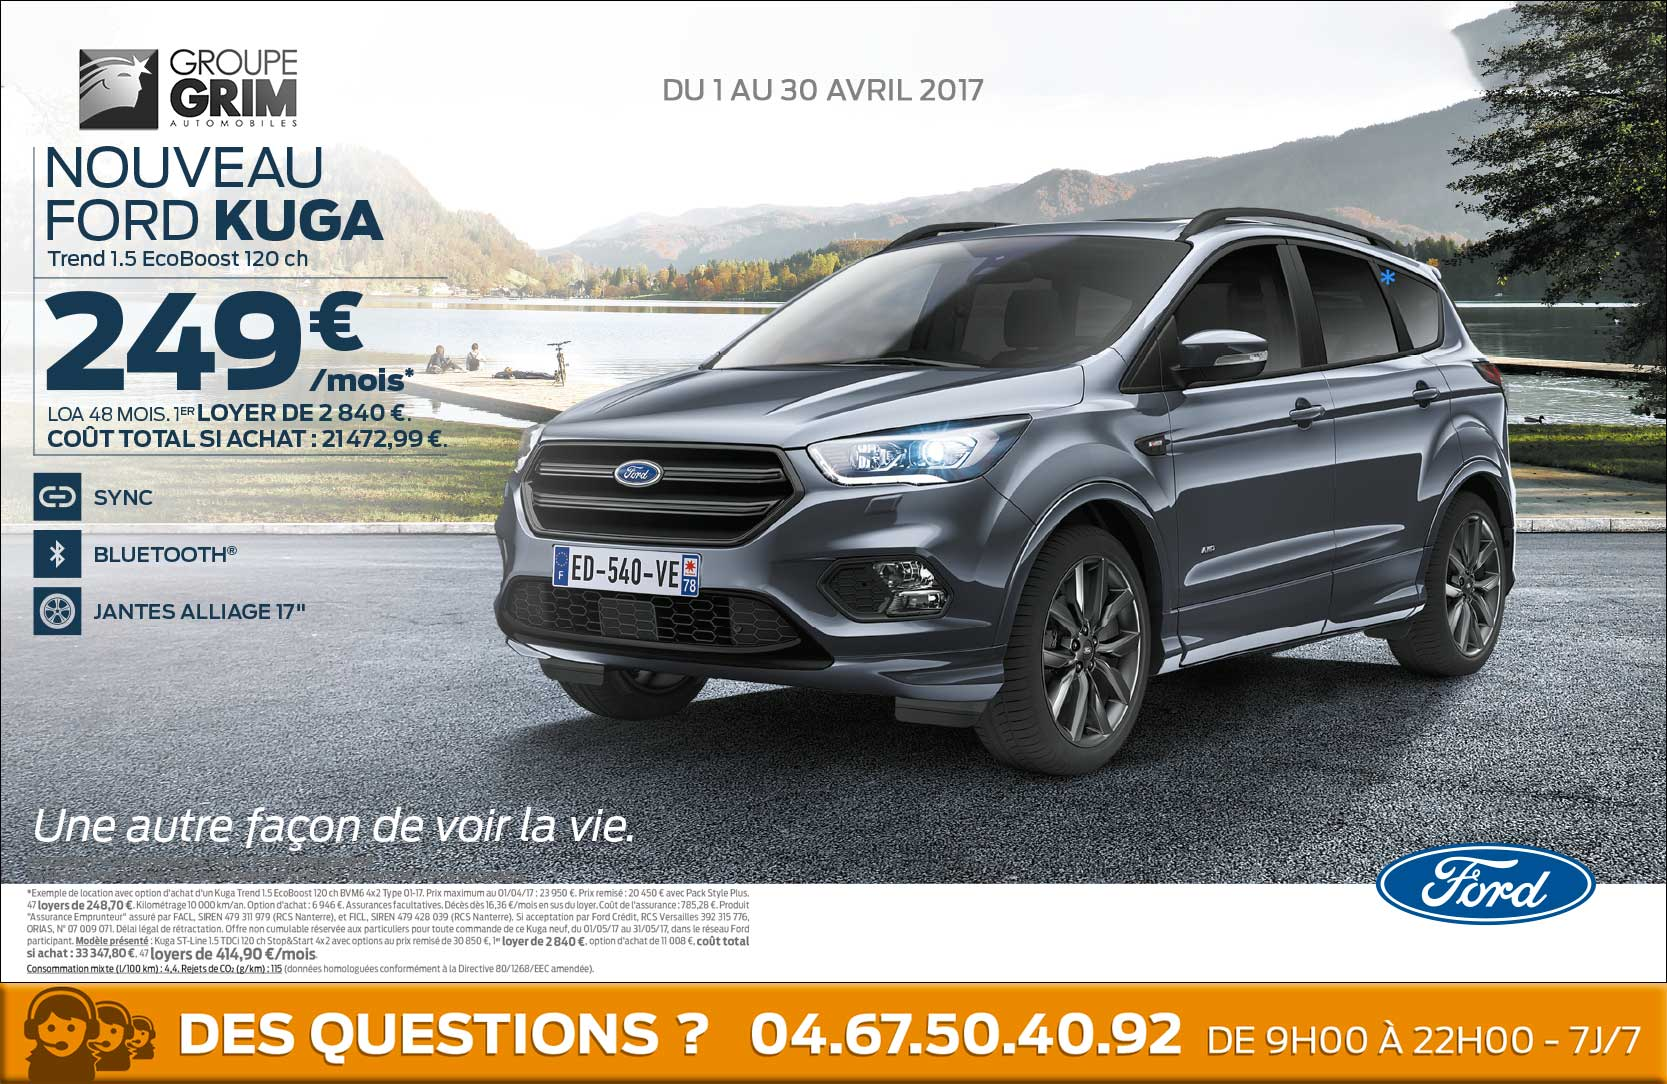 nouveau ford kuga a 249 mois ford grim auto savab saval fordstore ford rodez. Black Bedroom Furniture Sets. Home Design Ideas